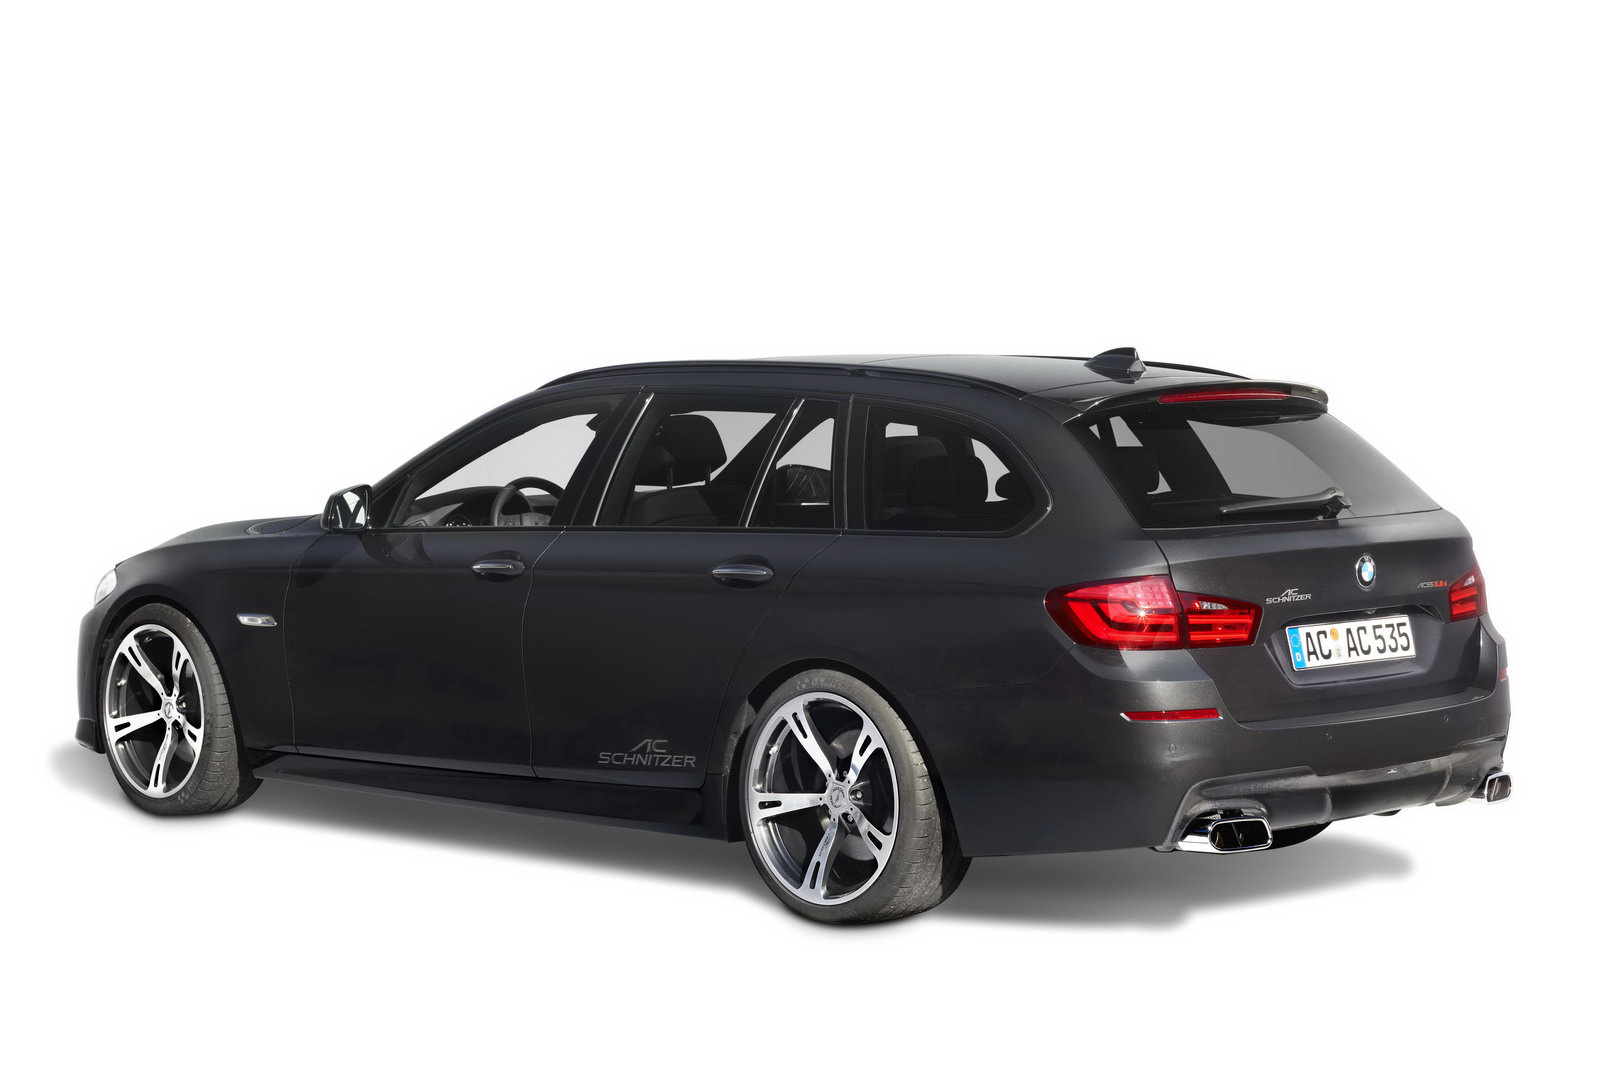 VIDEO: BMW 5 Series Touring F11 benefits from AC Schnitzer tuning kit